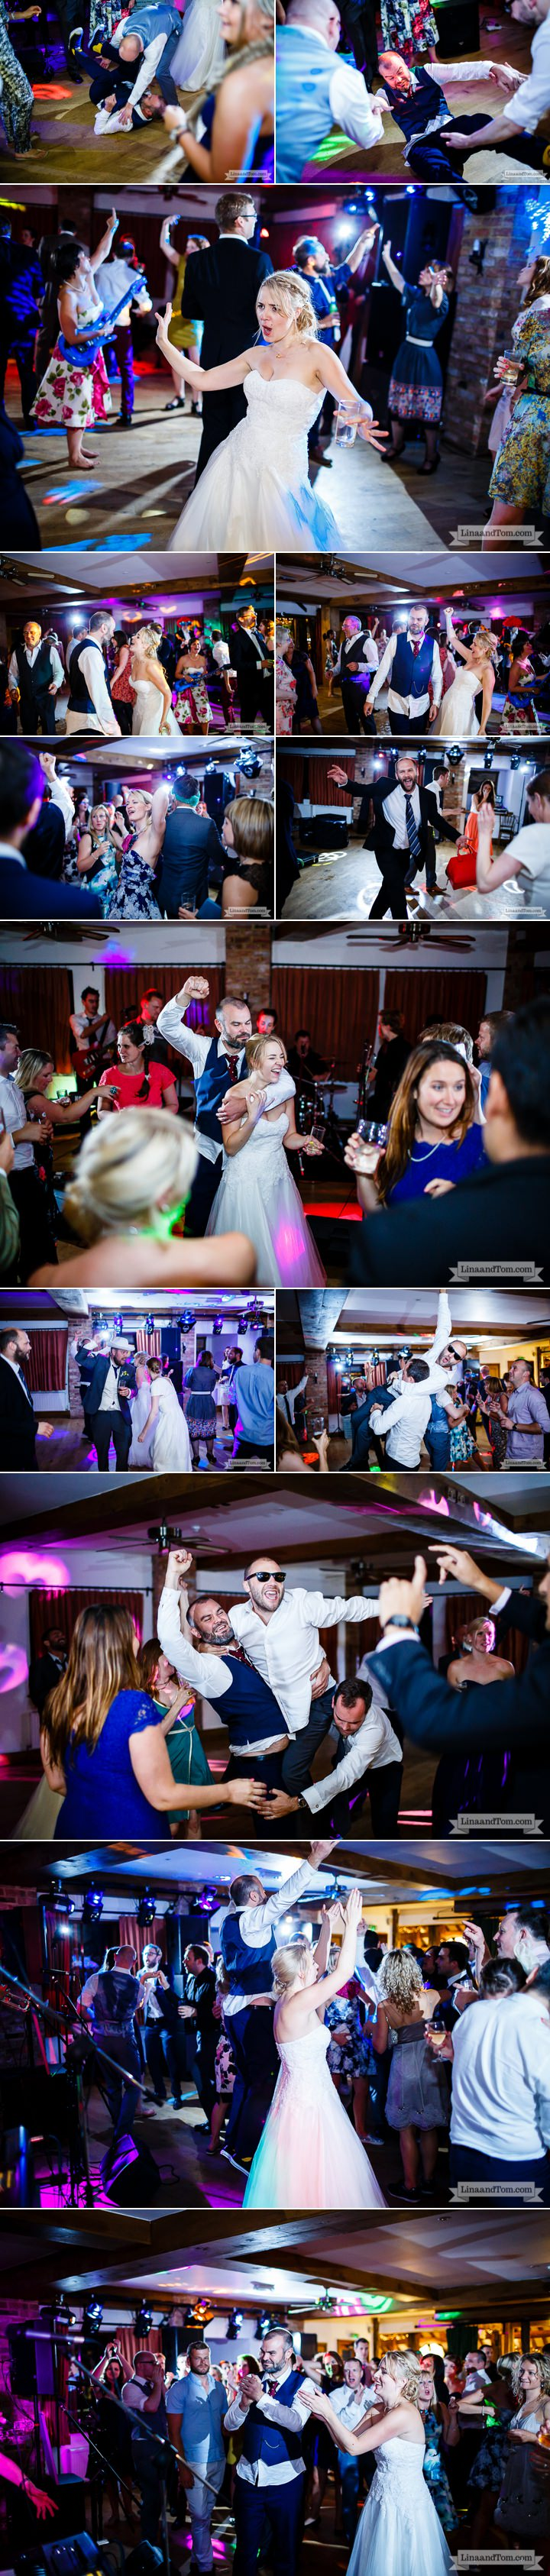 Party Hard Wedding Photography